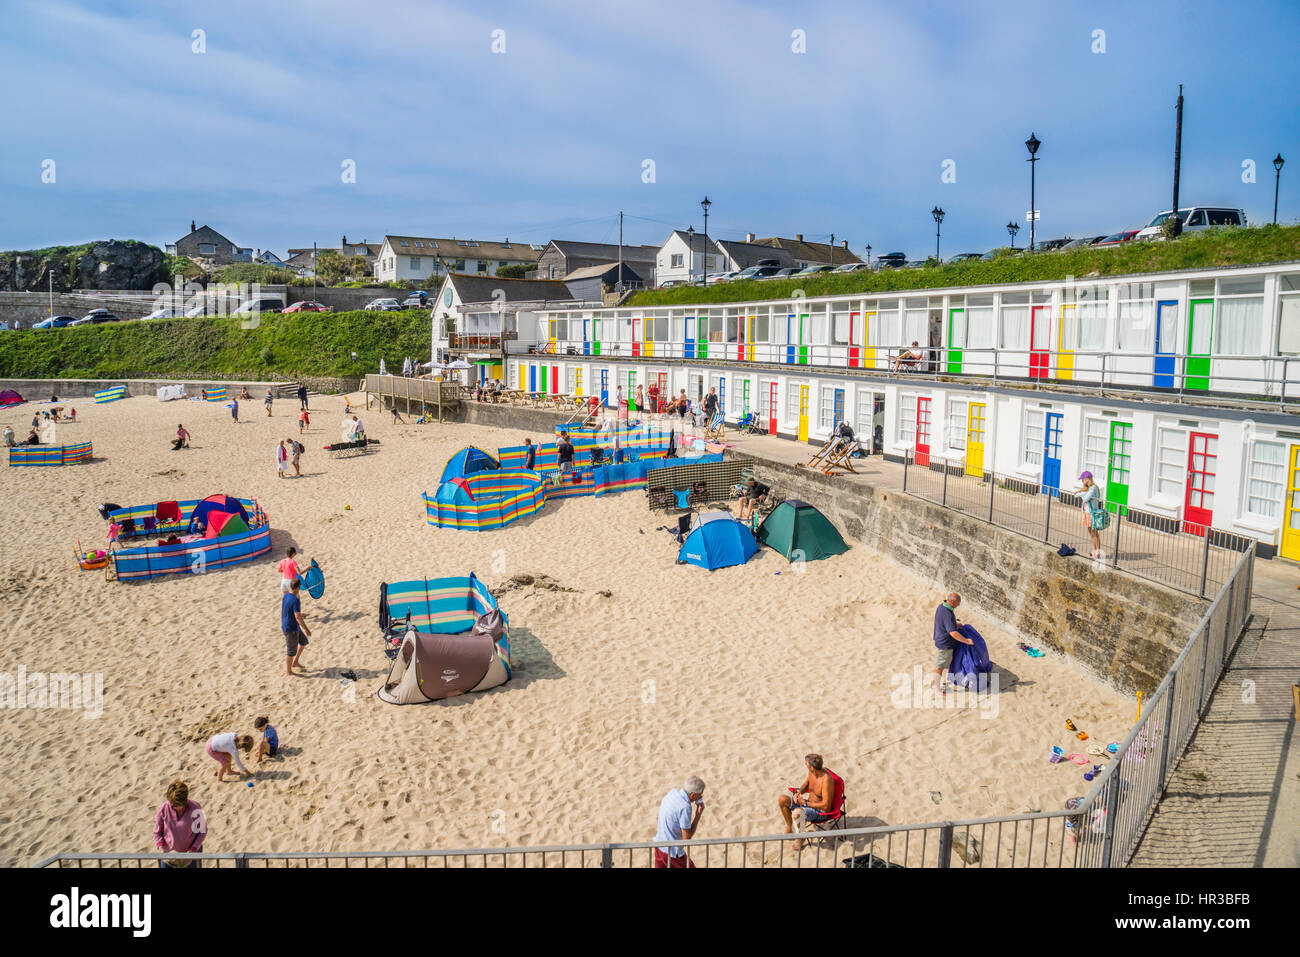 United Kingdom, South West England, Cornwall, view of Porthgwidden Beach, St Ives - Stock Image